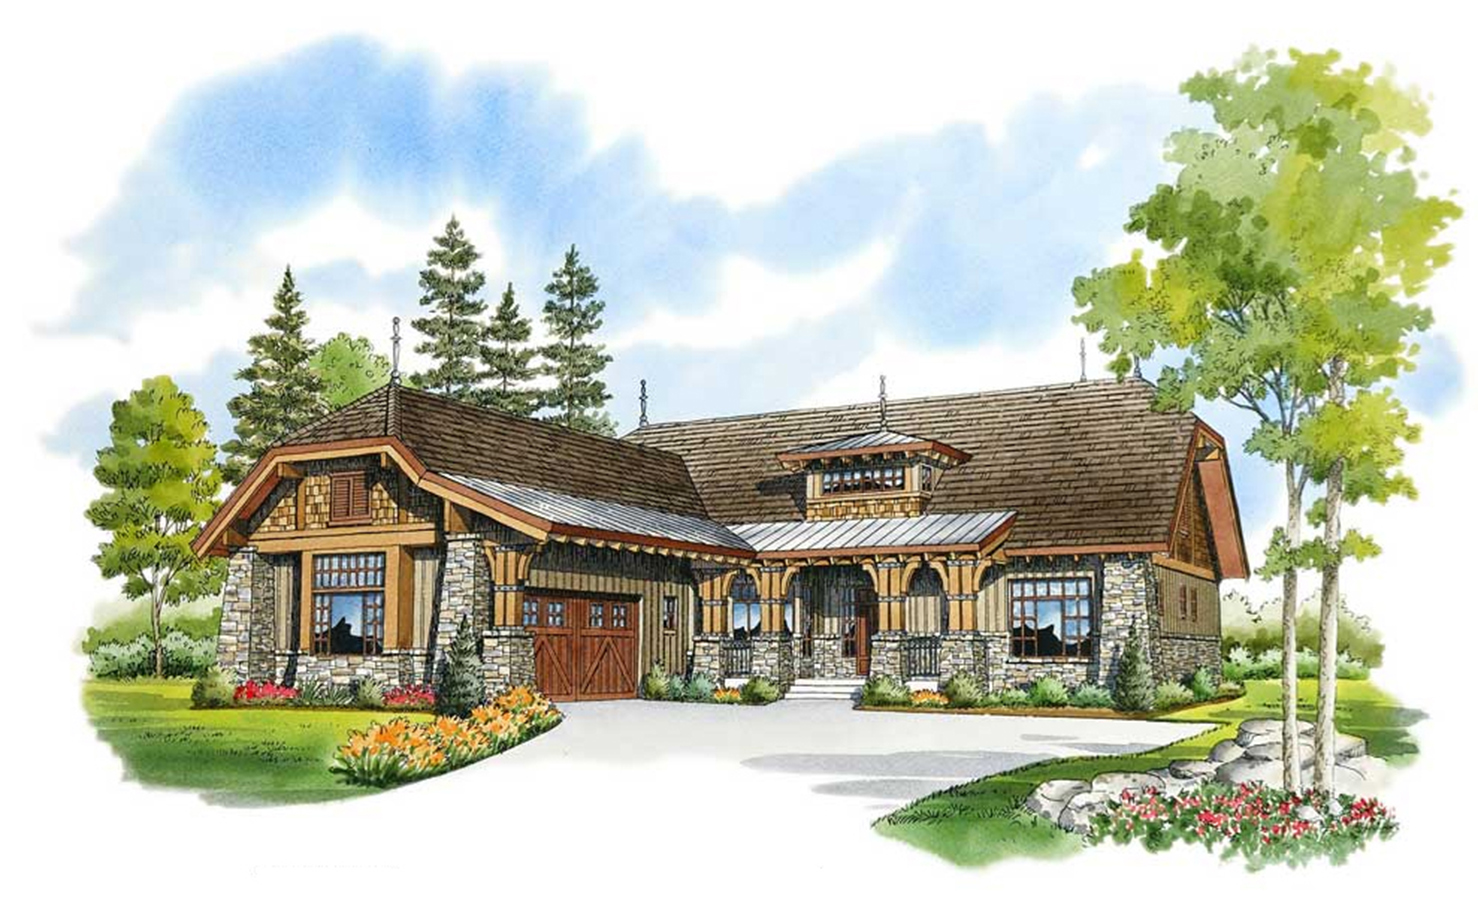 Private guest suite 12917kn architectural designs for House plans with guest suite